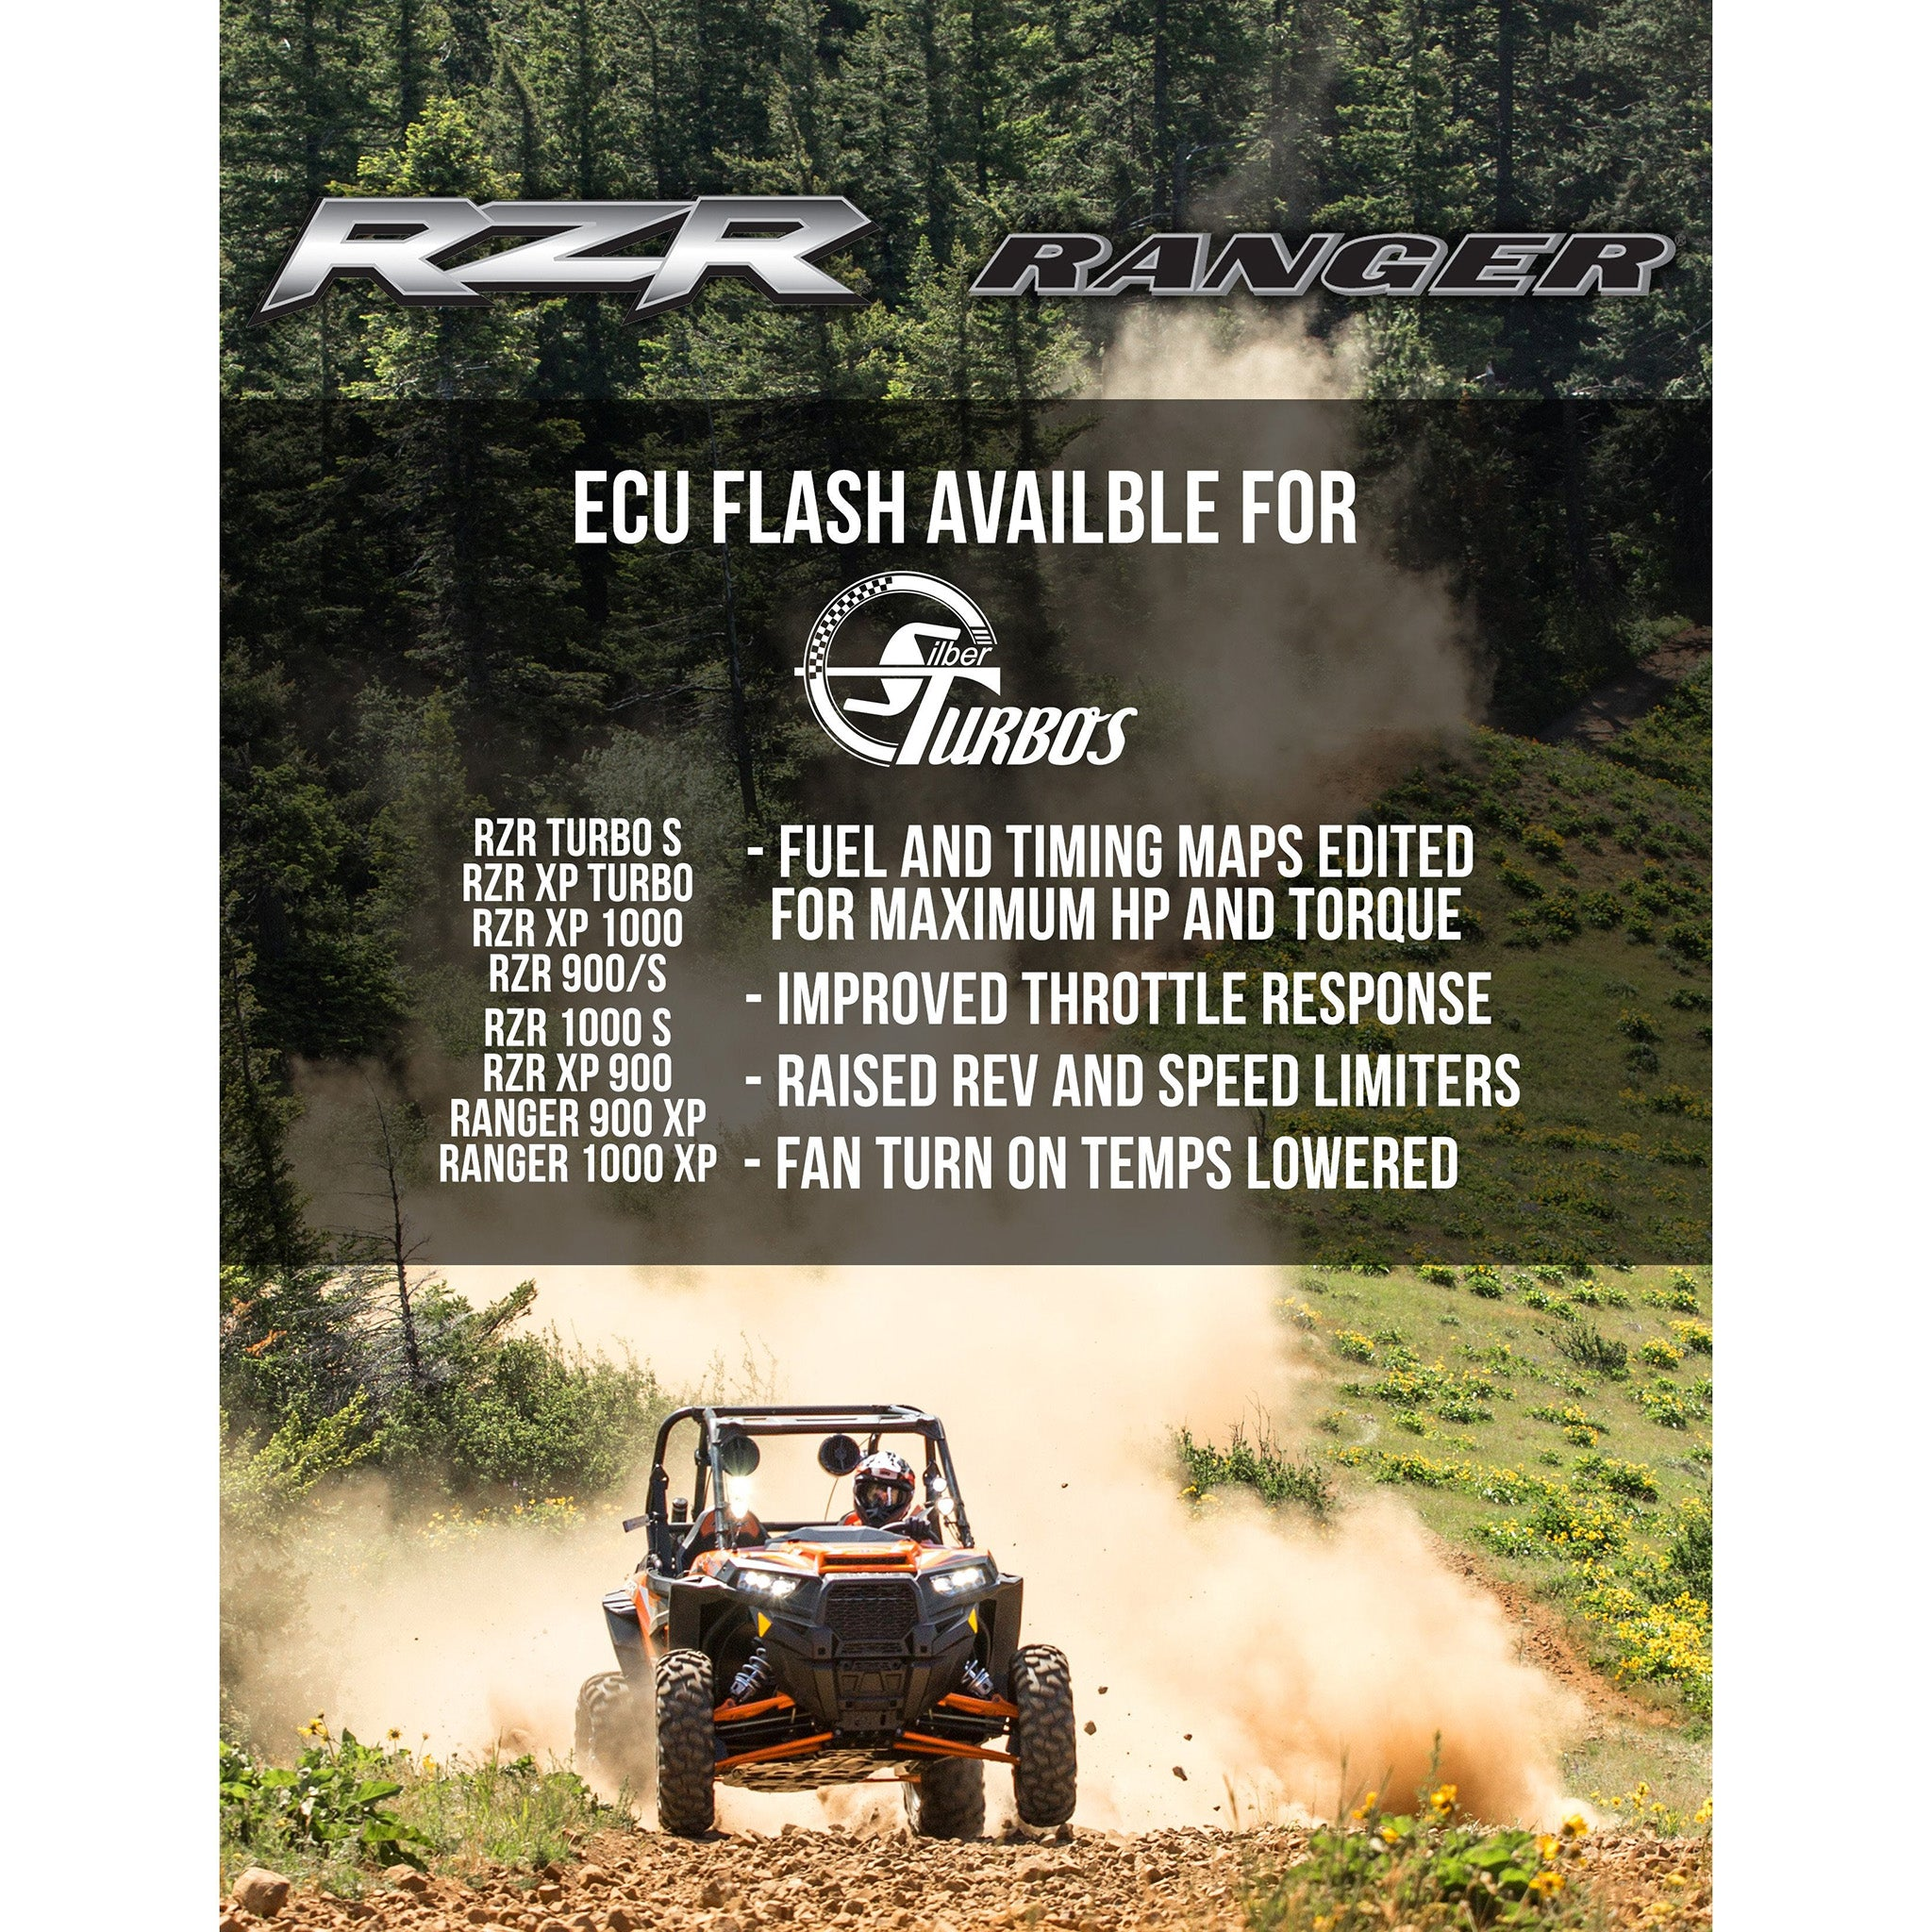 Polaris RZR ECU Reflash for Turbo & Naturally aspirated RZR